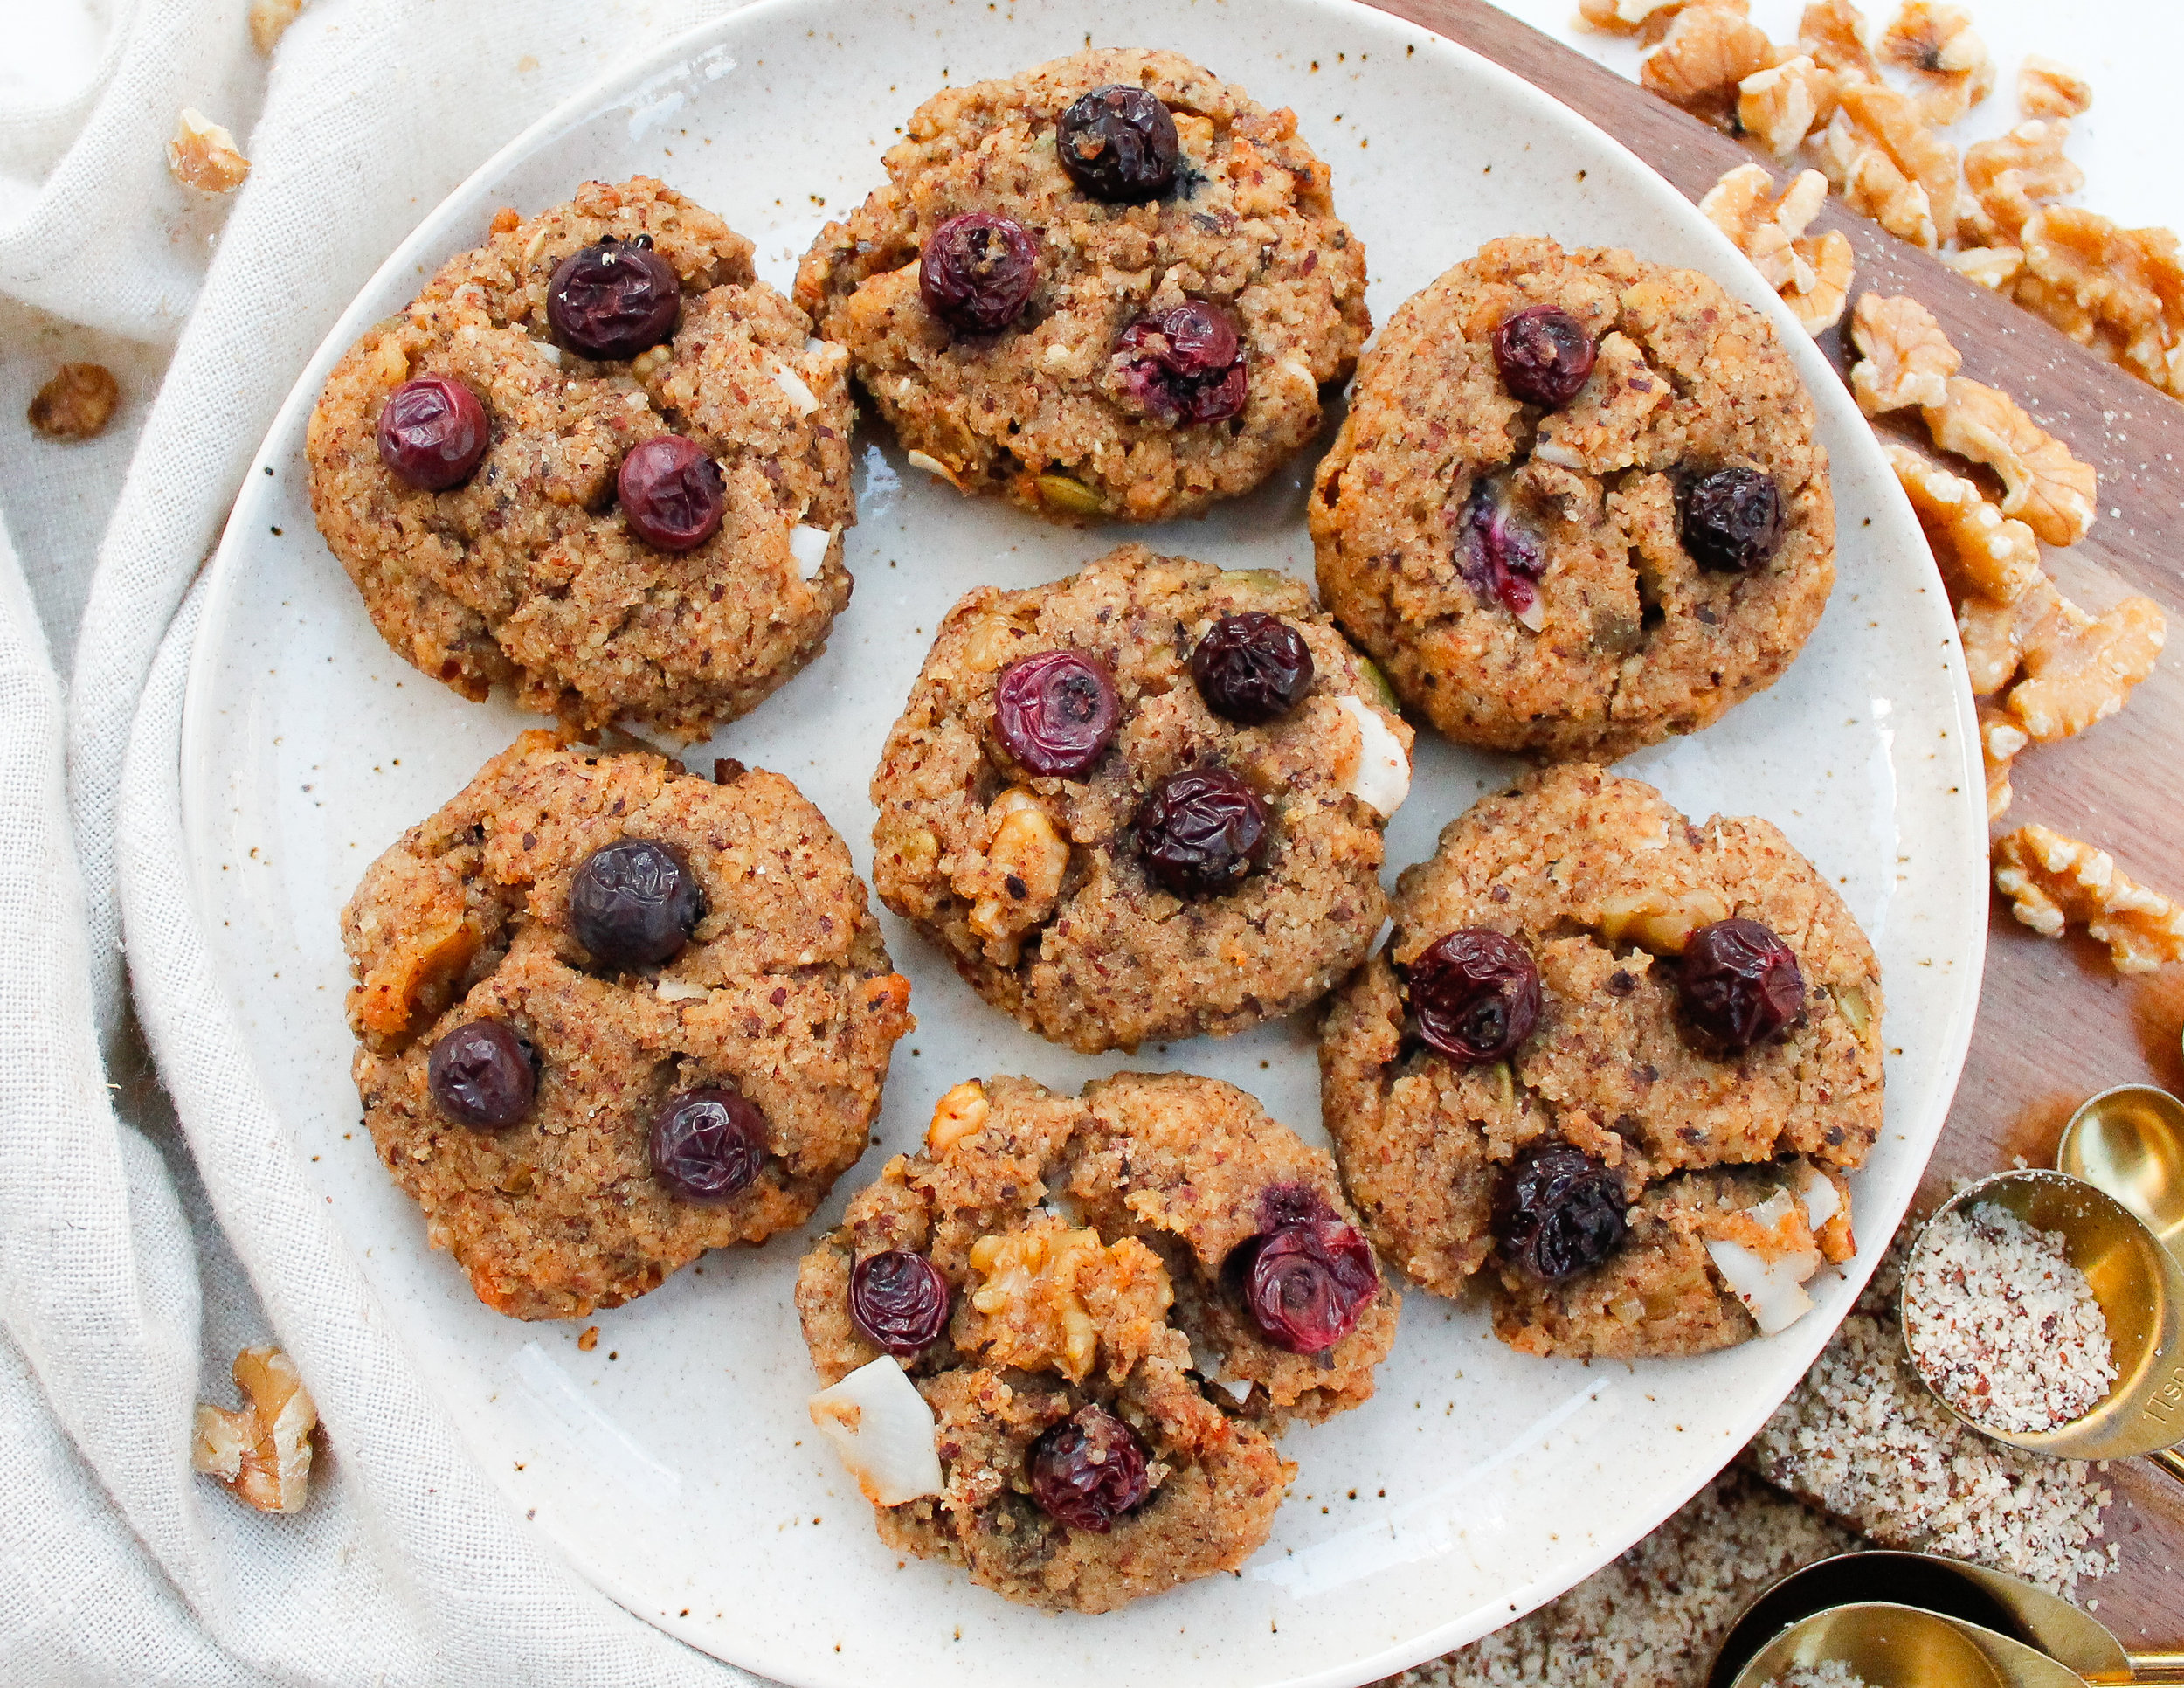 Loaded Paleo Breakfast Cookies || These paleo breakfast cookies are full of healthy goodies and wholesome ingredients like hazelnut flour, nuts, coconut, blueberries and more! They're grain free, gluten free, dairy free, refined sugar free AND Specific Carbohydrate Diet friendly!! They're a perfect healthy breakfast, healthy sweet treat or healthy snack. Click through for the full recipe! || plentyandwell.com || #breakfastcookies #paleocookies #paleobaking #SpecificCarbohydrateDiet